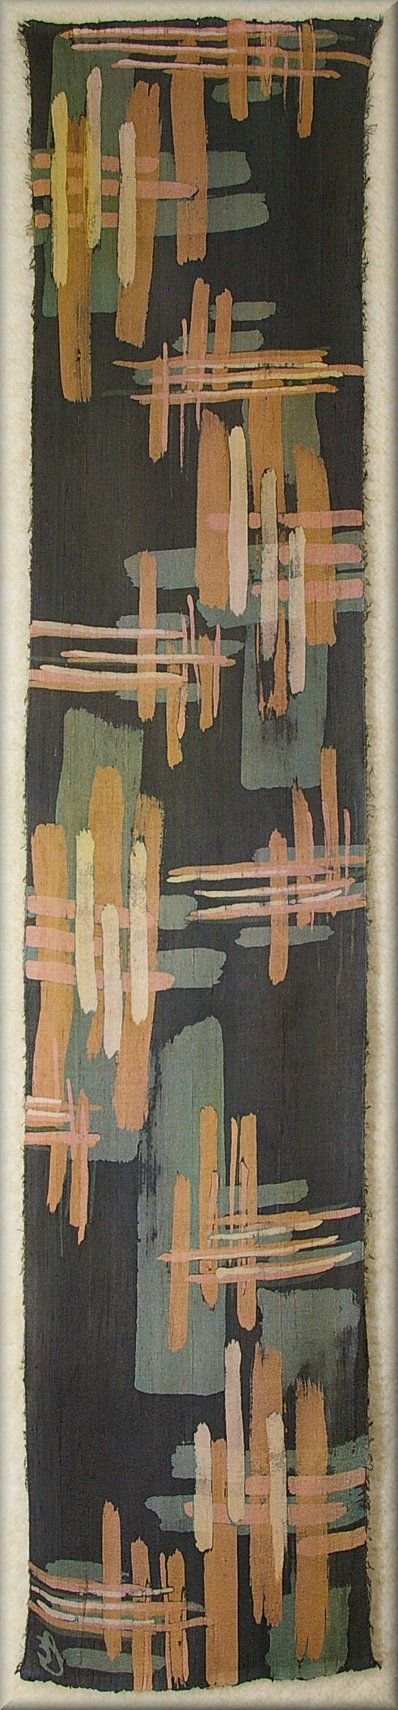 """Brush Strokes, in Copper Tones - Backgound Green with hint of charcoal mixed in - Dupioni Mens Silk Scarf (approx. 11x54 inches) by Laura Elderton """"Silk in Art"""""""